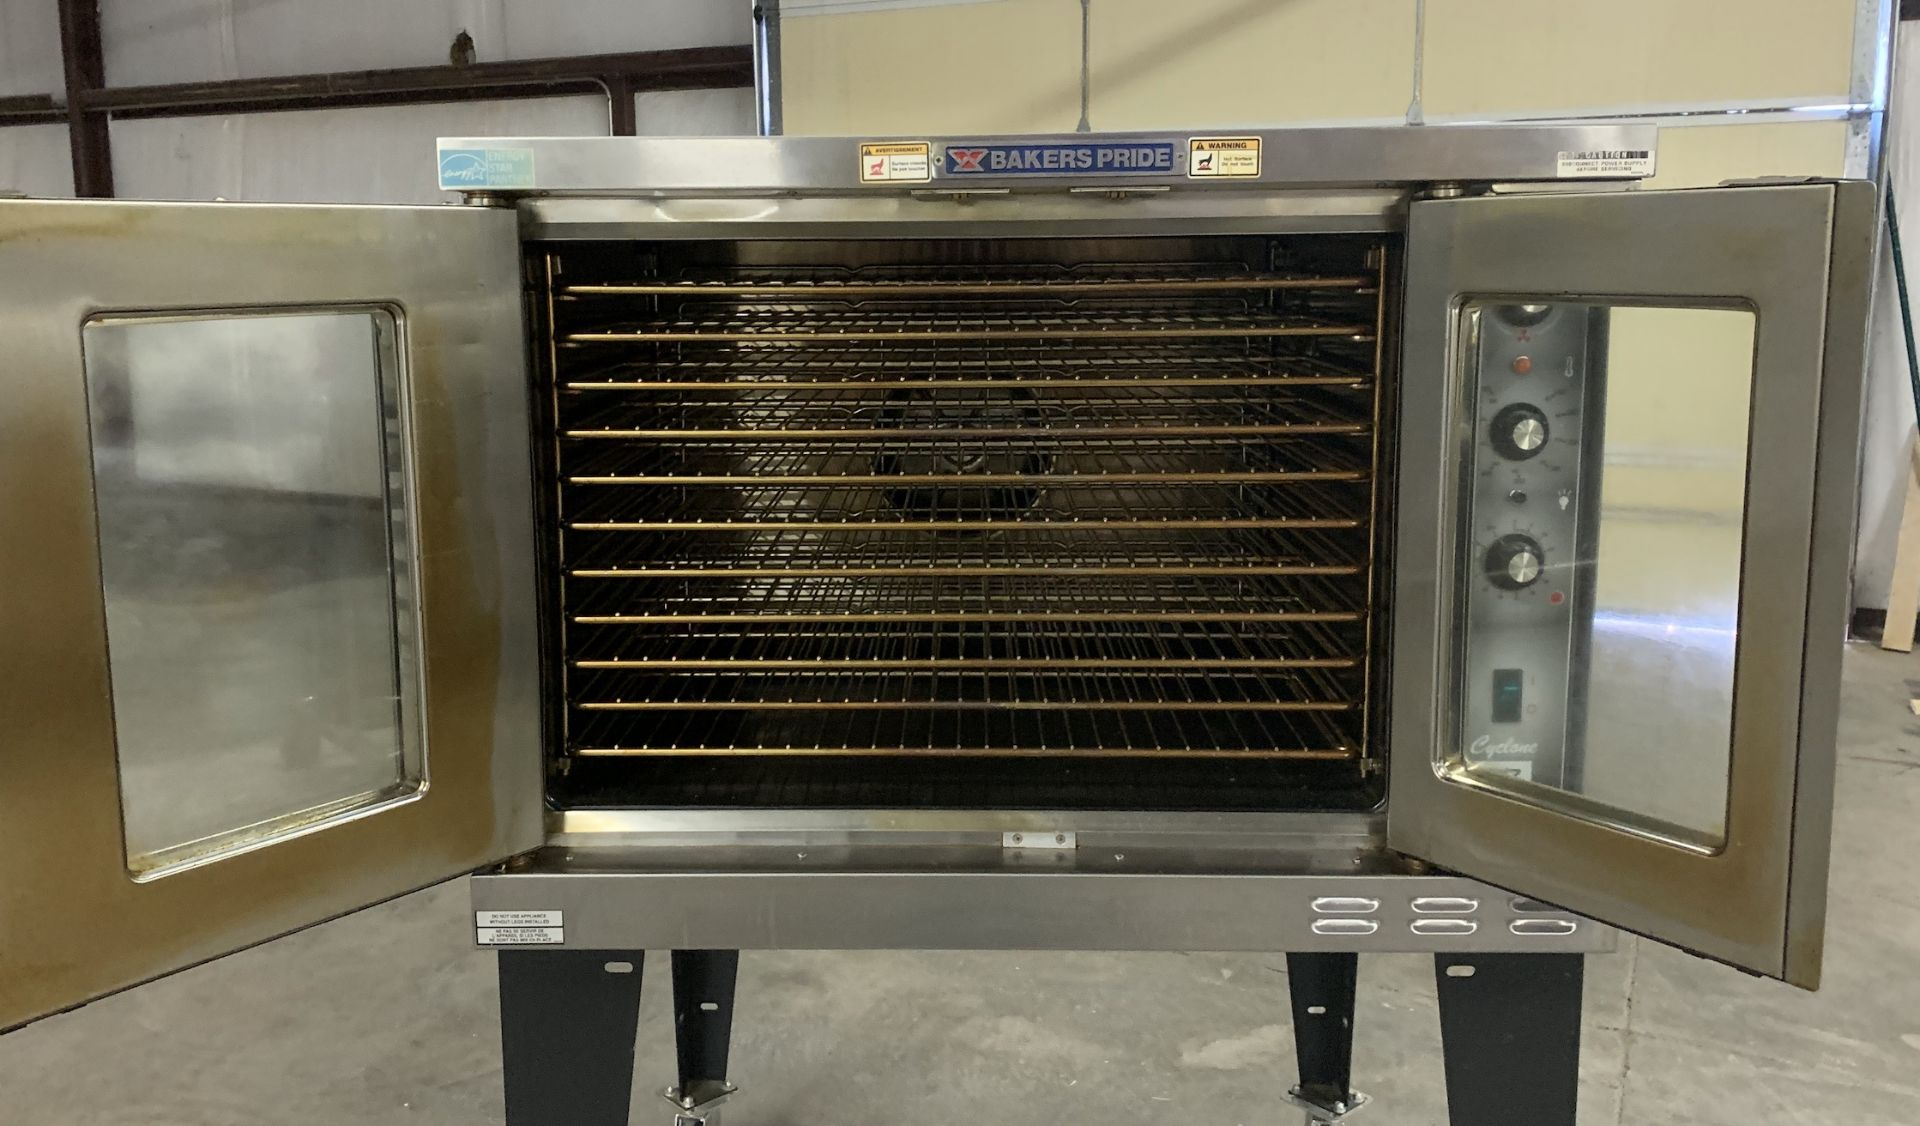 Used Bakers Pride Cyclone Series Single Deck Full Size Electric Decarb Oven. Model BCO-E1w/ 39 trays - Image 2 of 8